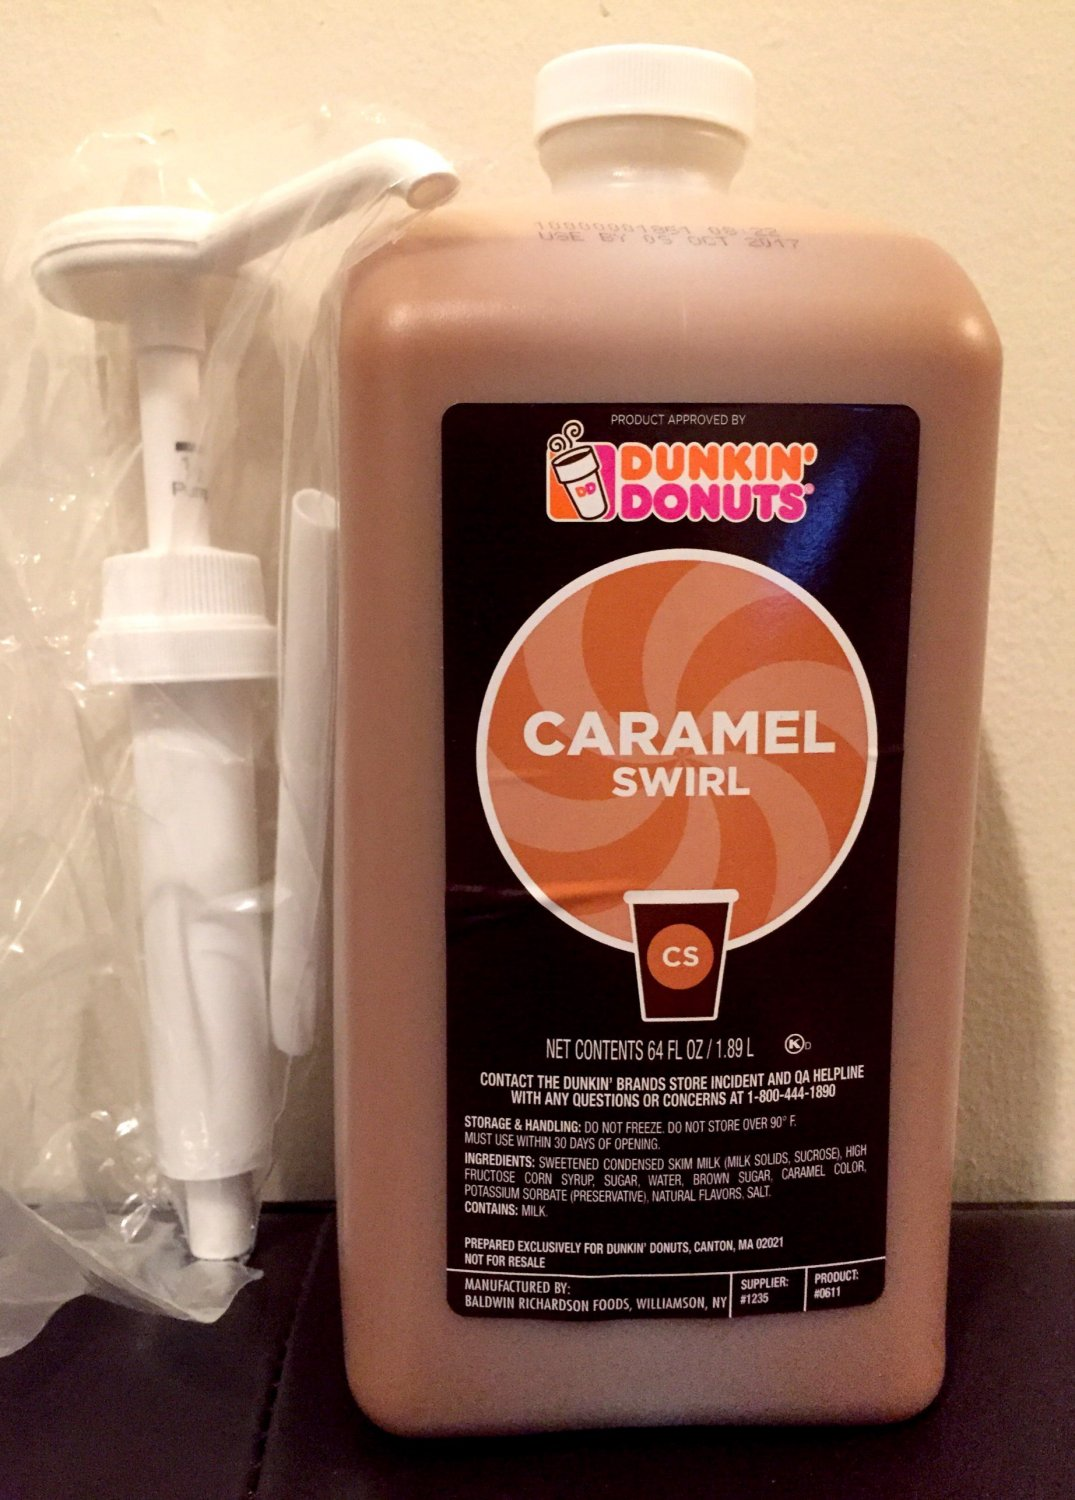 Dunkin Donuts Caramel Swirl with Pump See Description First